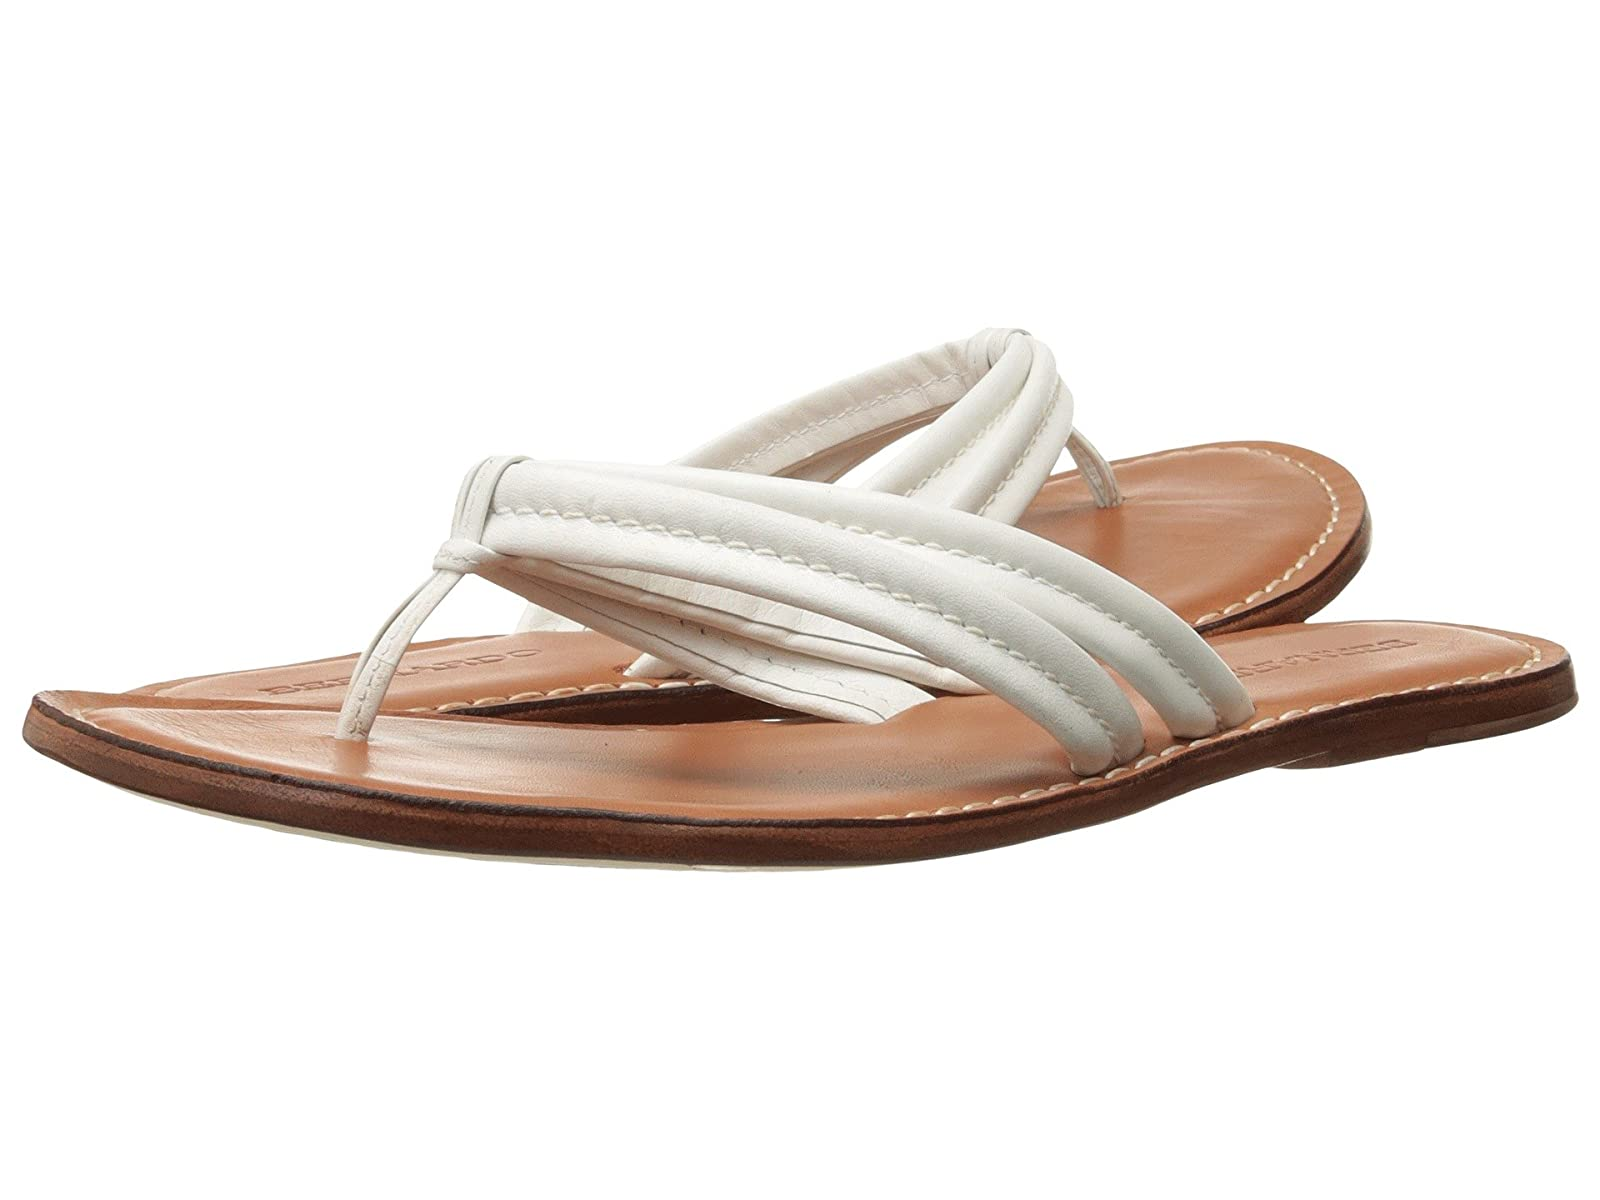 Mr/Ms:Bernardo Miami Sandal: Sandal: Sandal: Excellent Value e9aaa2